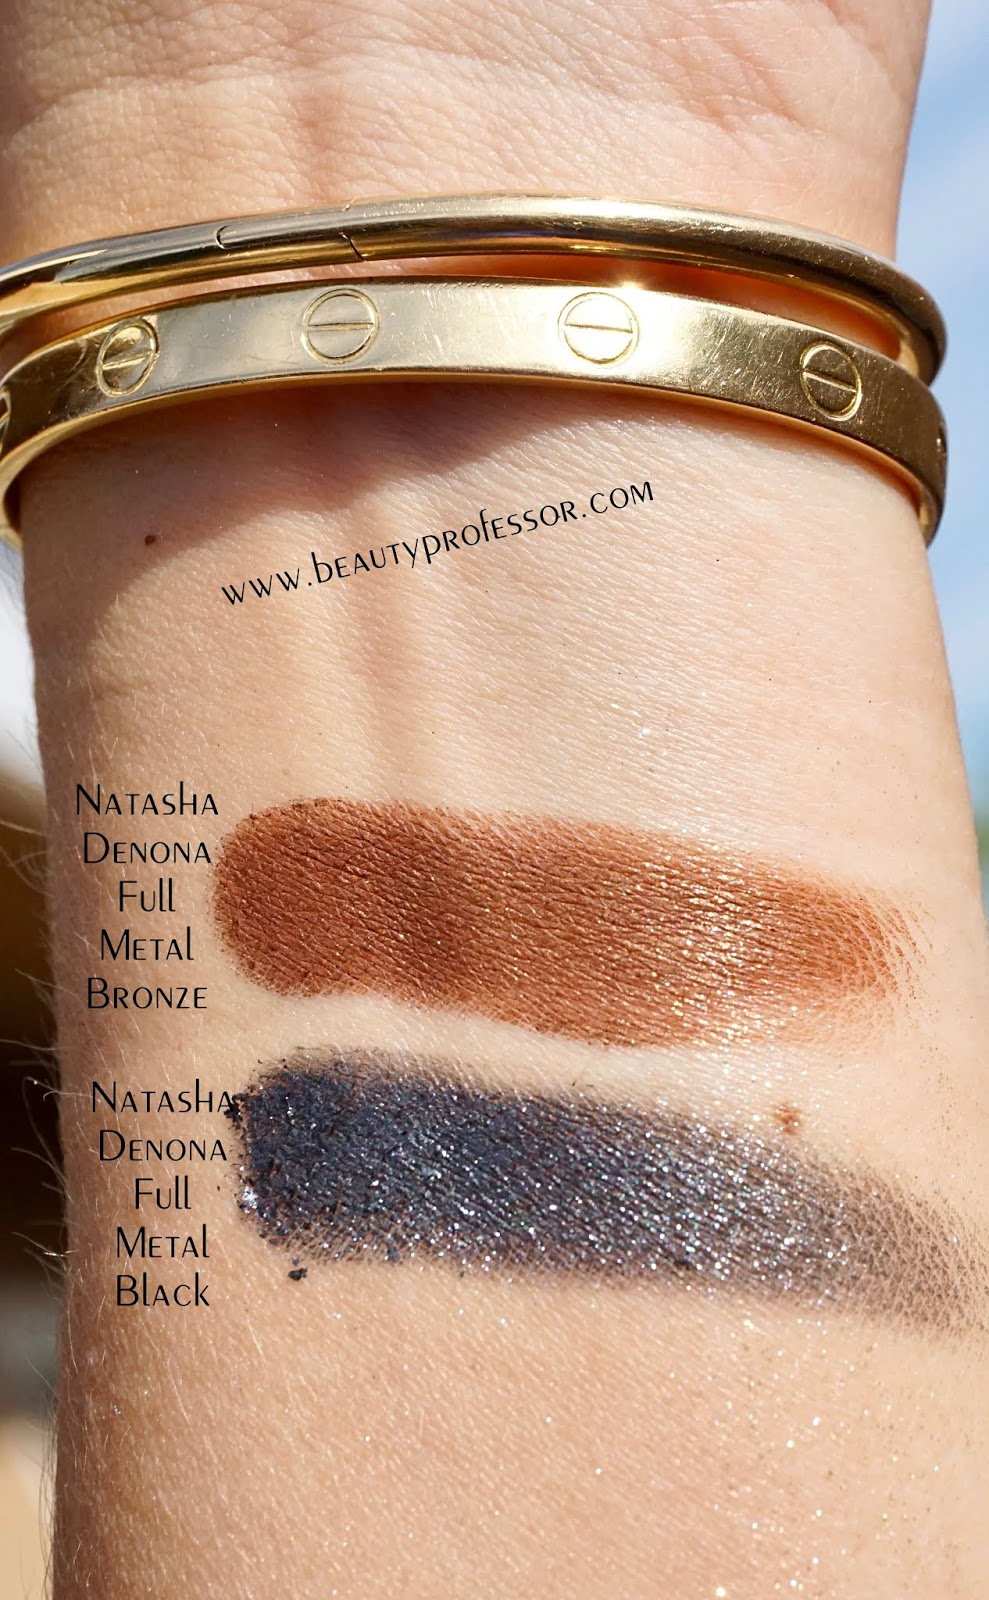 Natasha denona chroma crystal full metal bronze swatches